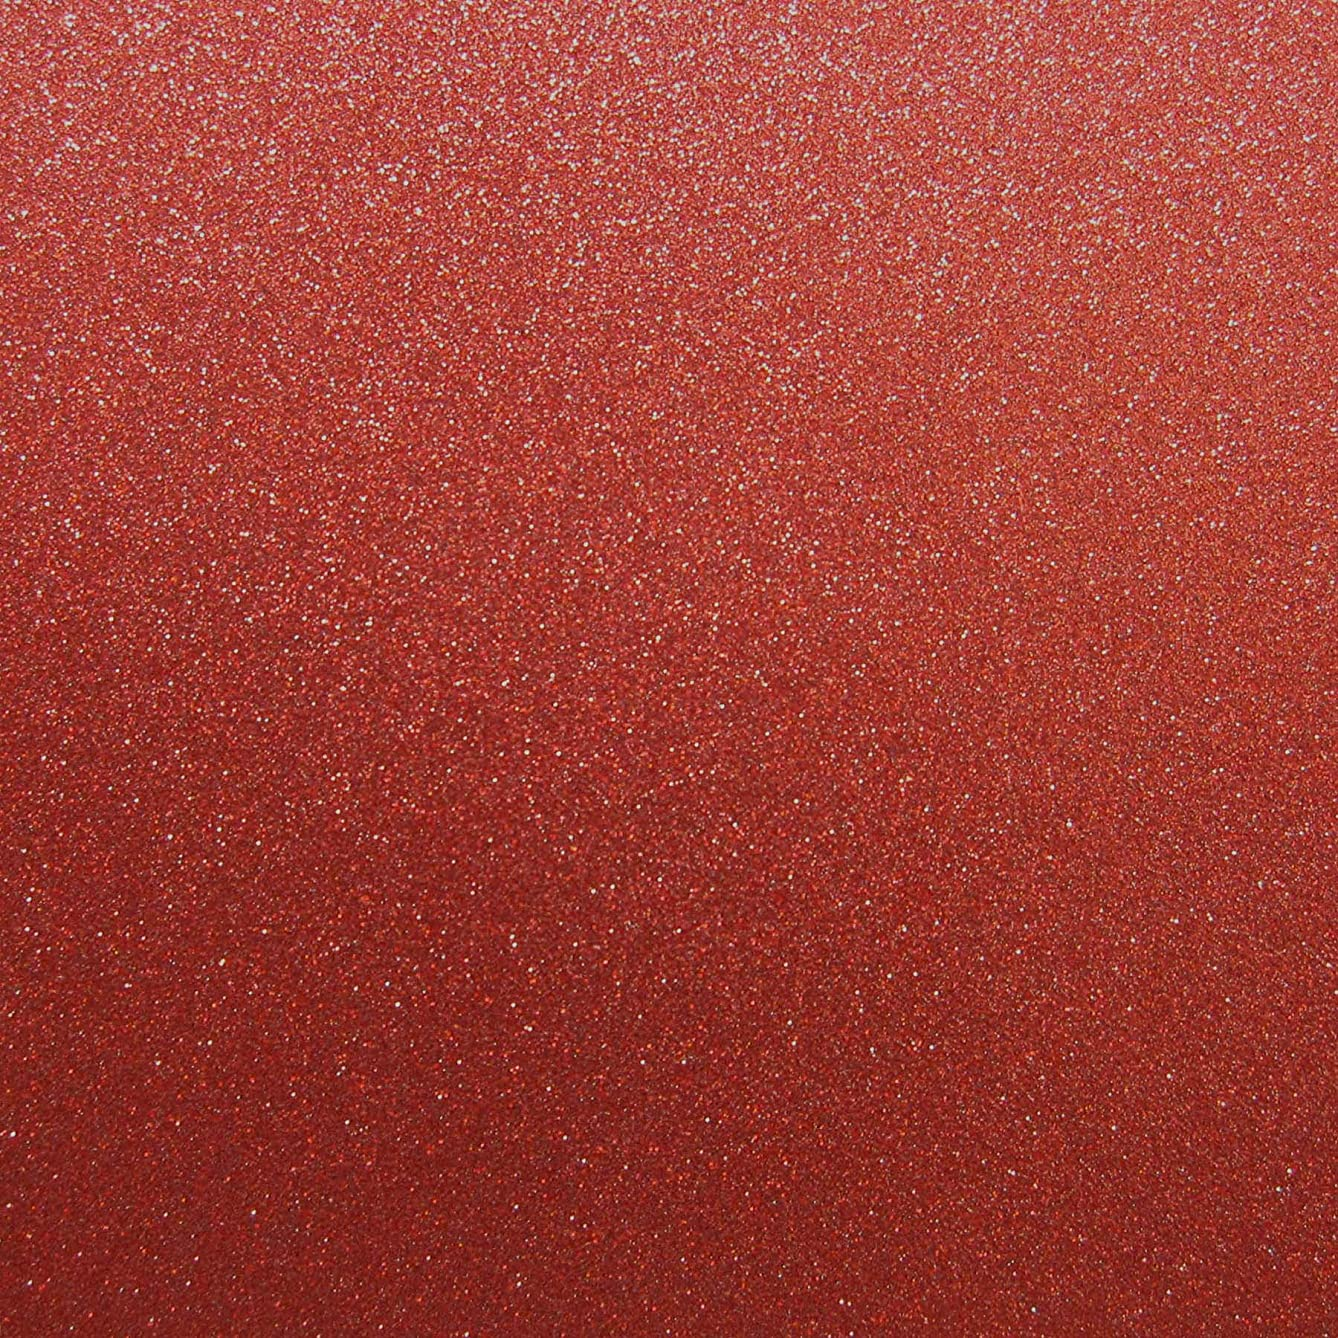 Best Creation 12-Inch by 12-Inch Glitter Cardstock, Ornament Gem